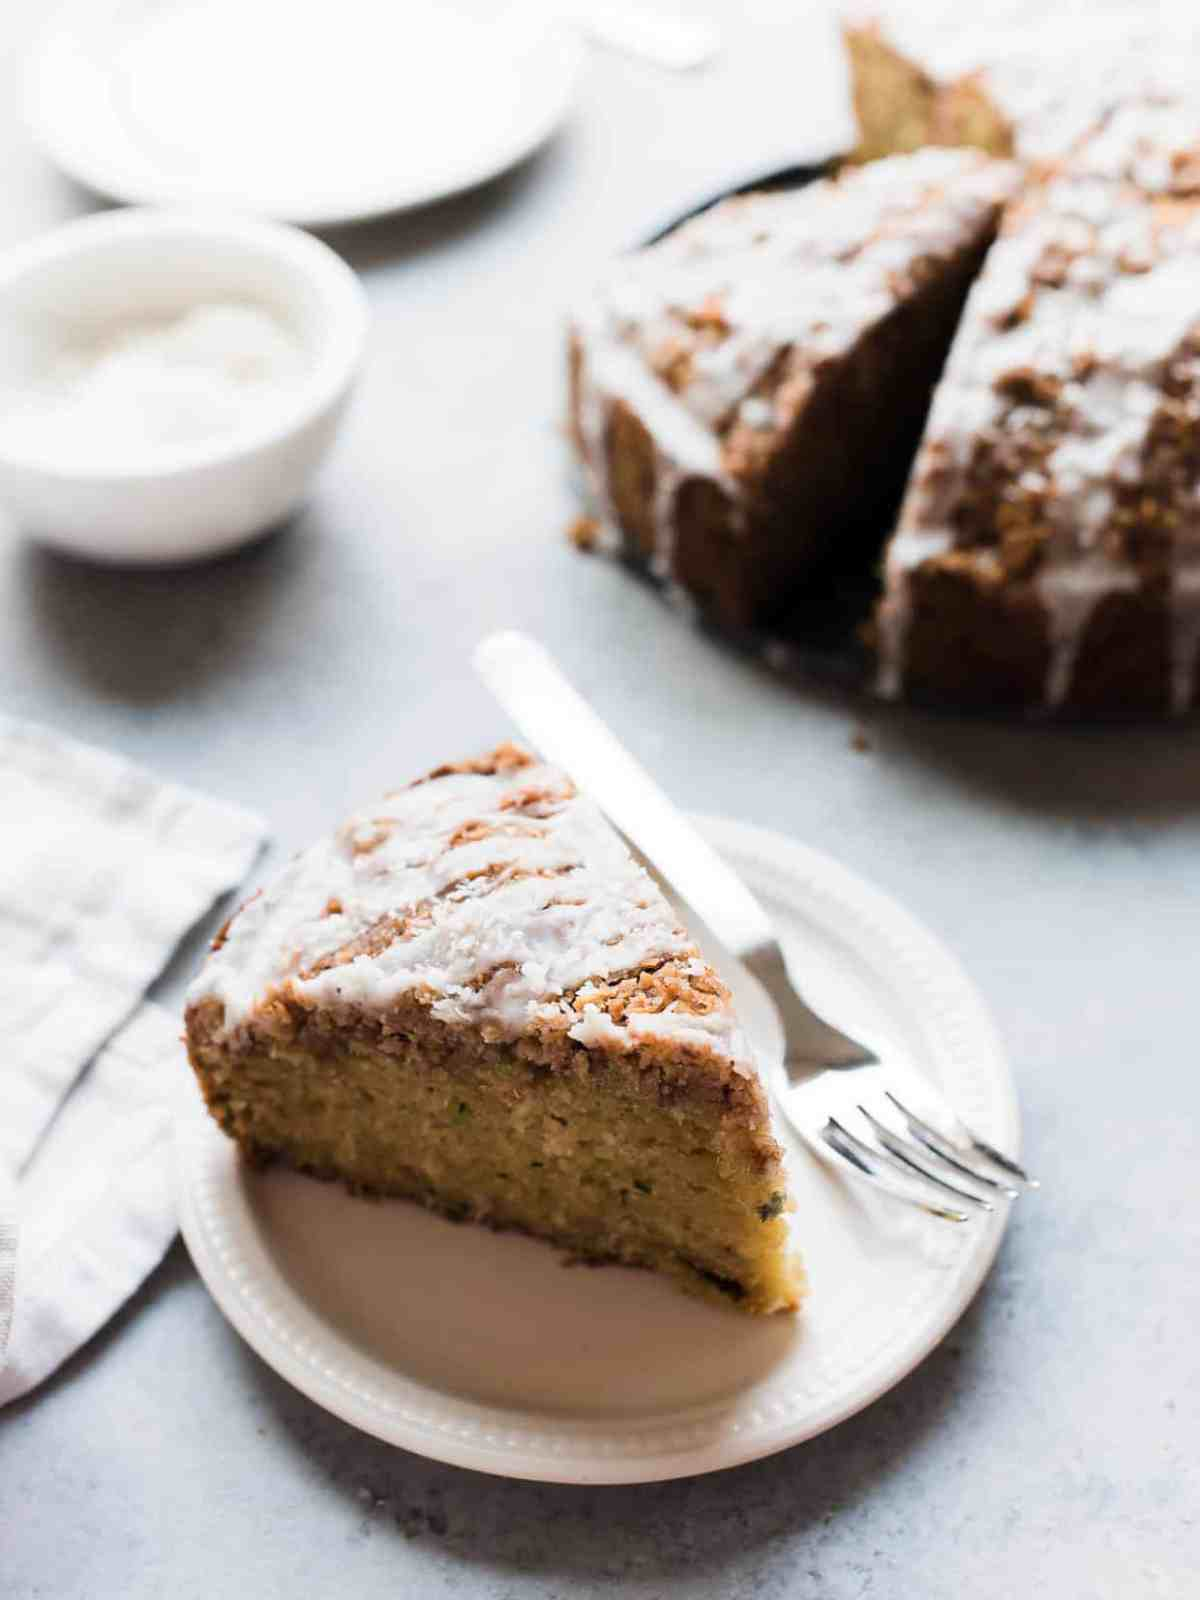 A slice of coconut zucchini coffee cake on a white plate.